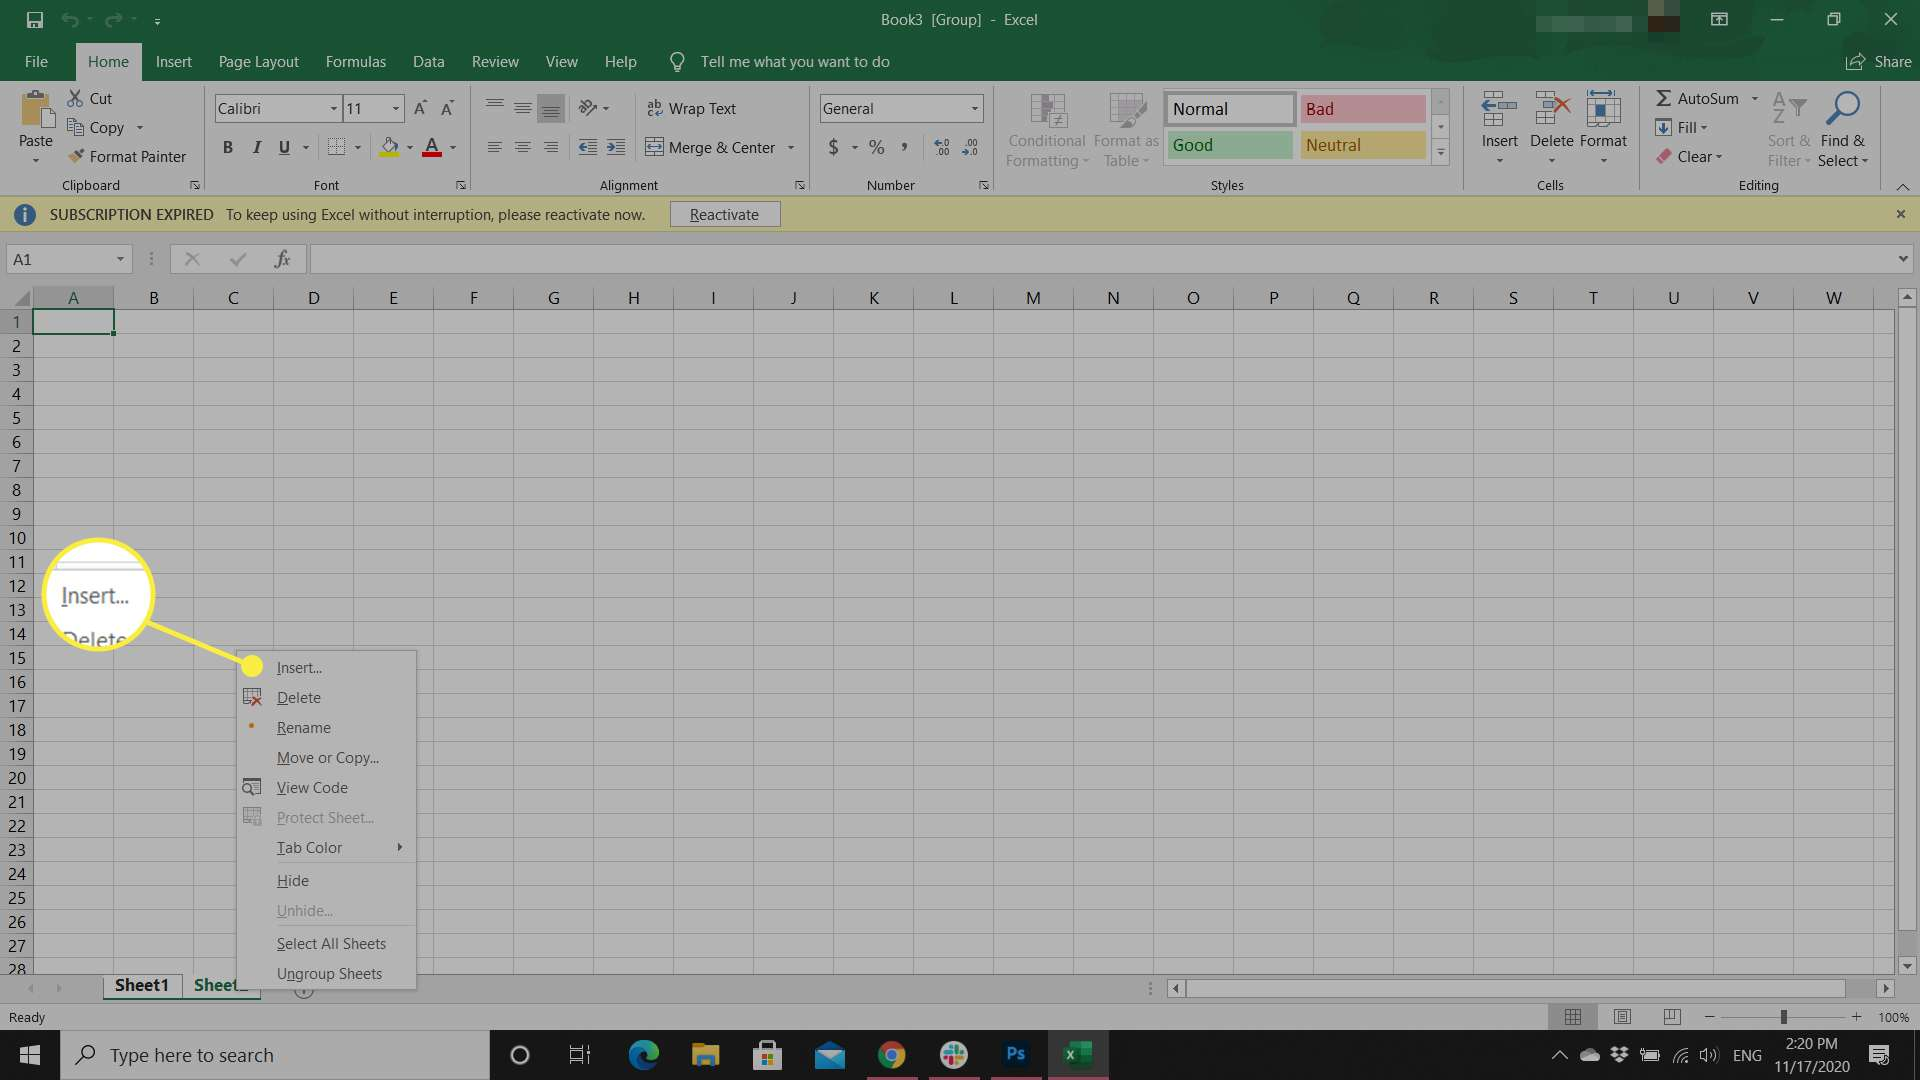 An Excel user adds multiple worksheets using the Insert option